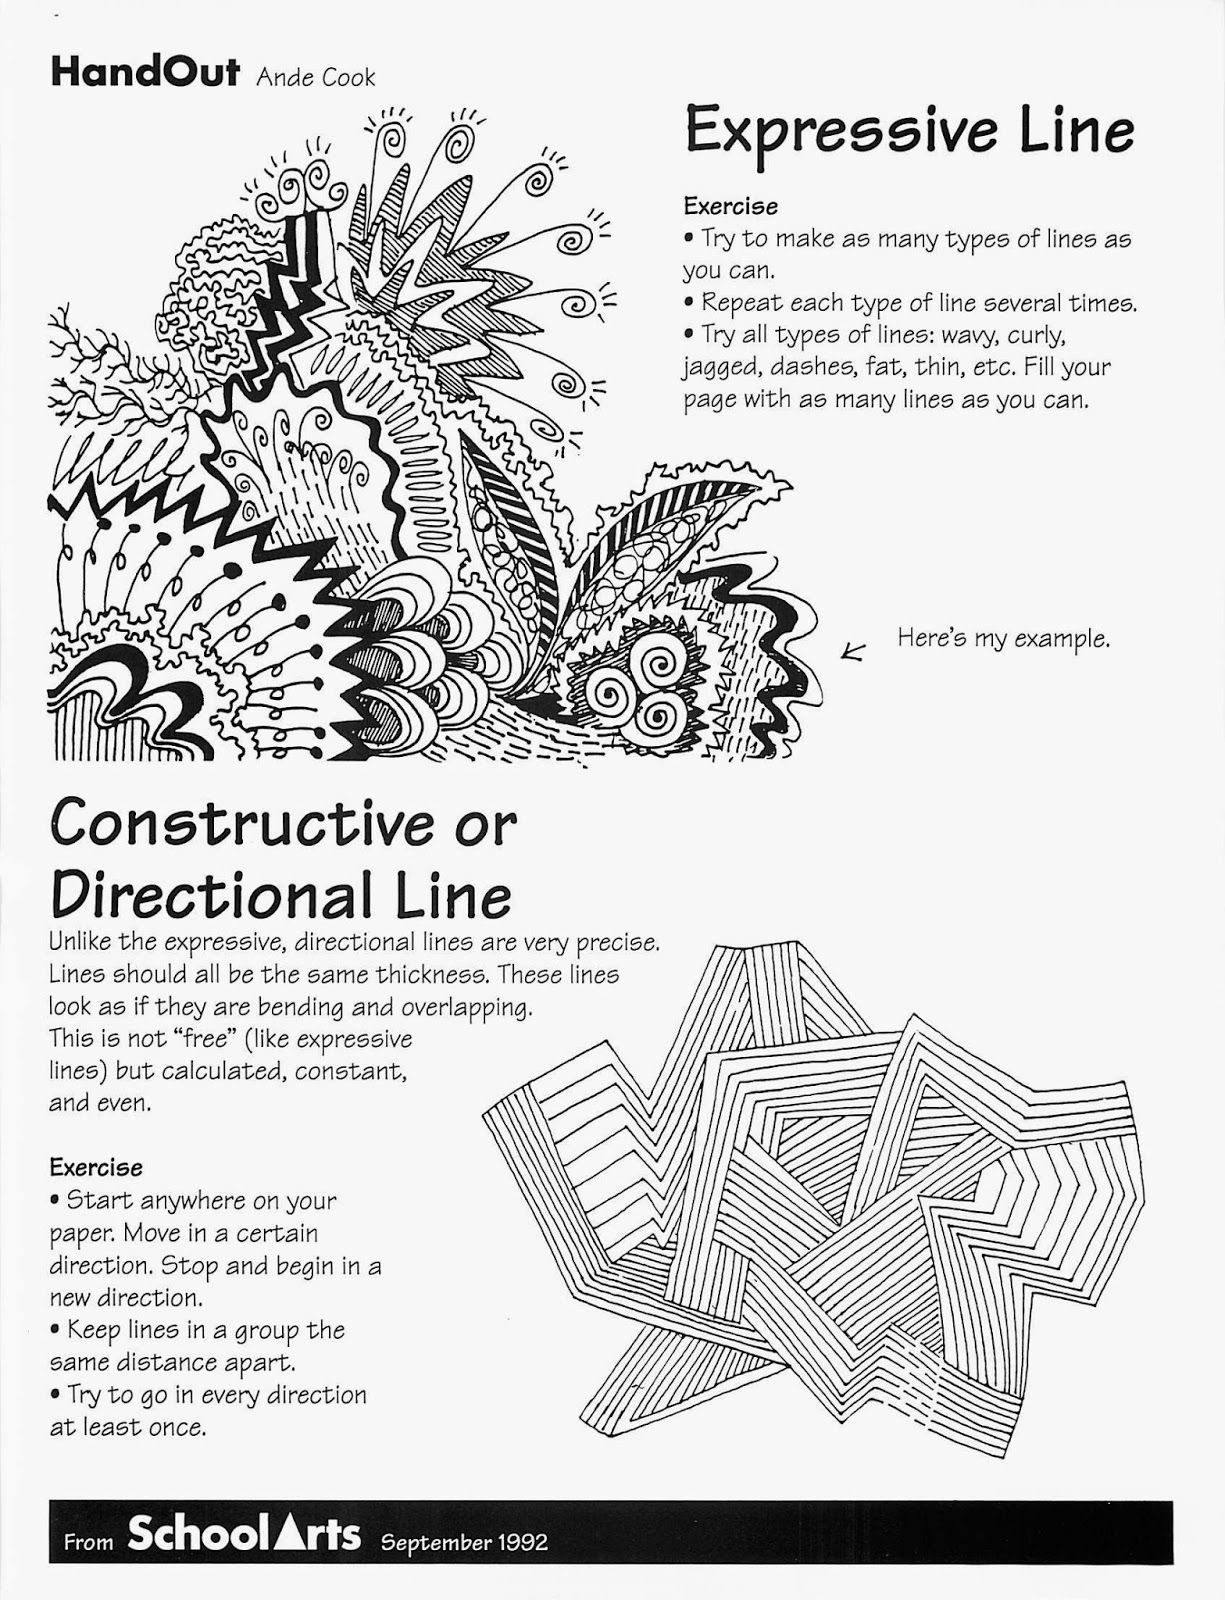 No Corner Suns Free Expressive Line Handout And Substitute Lesson